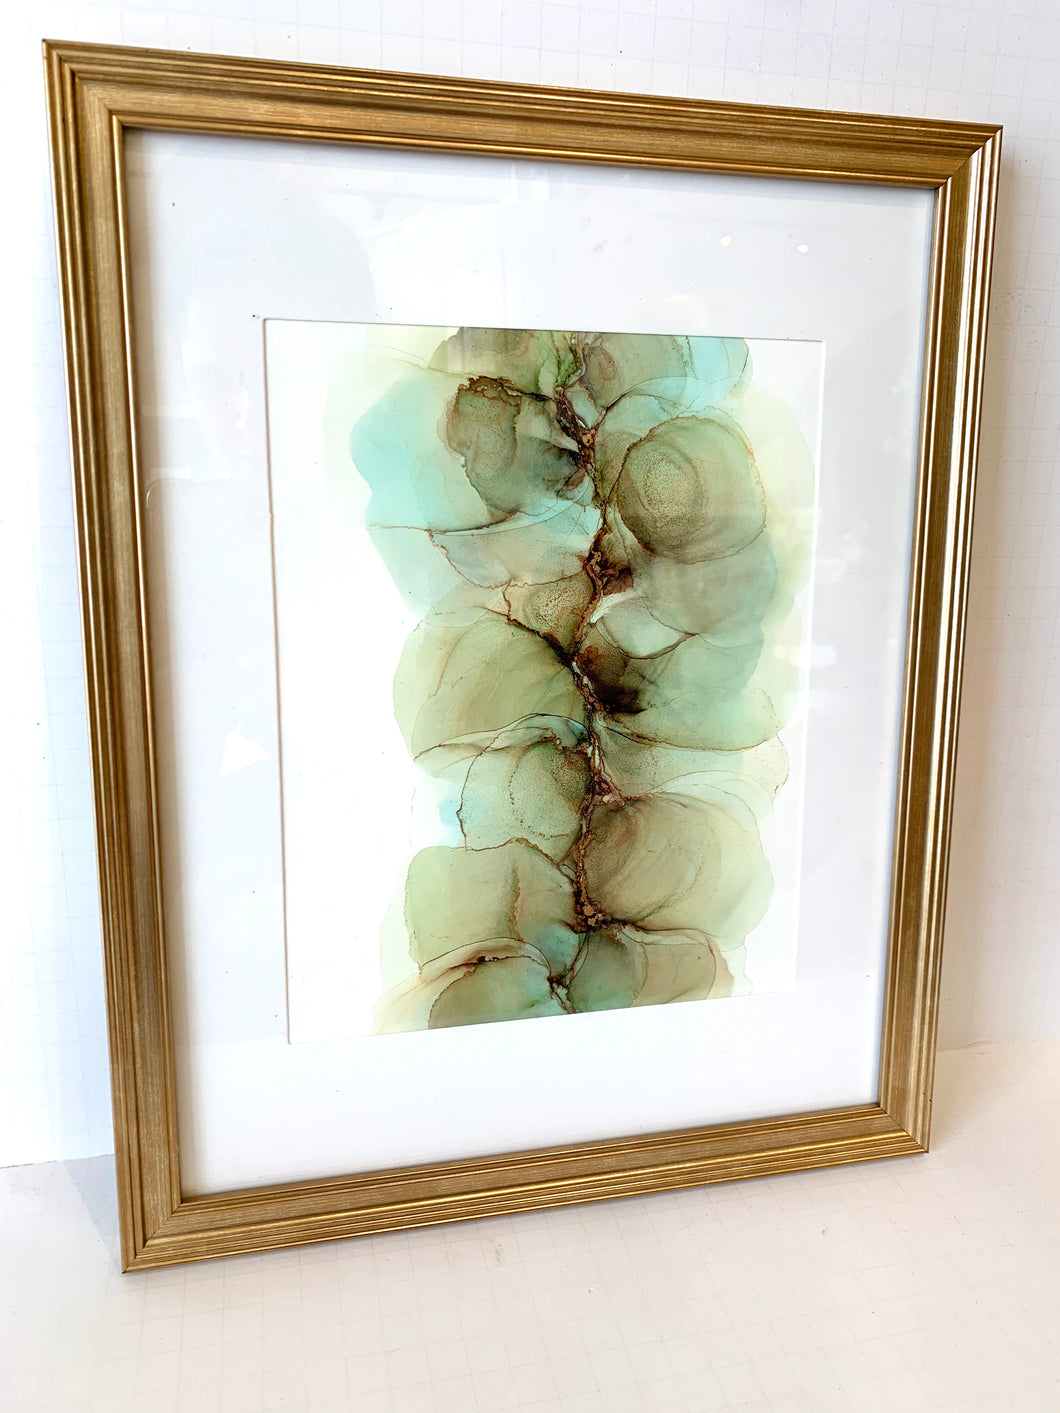 11x14 Framed Abstract Ink